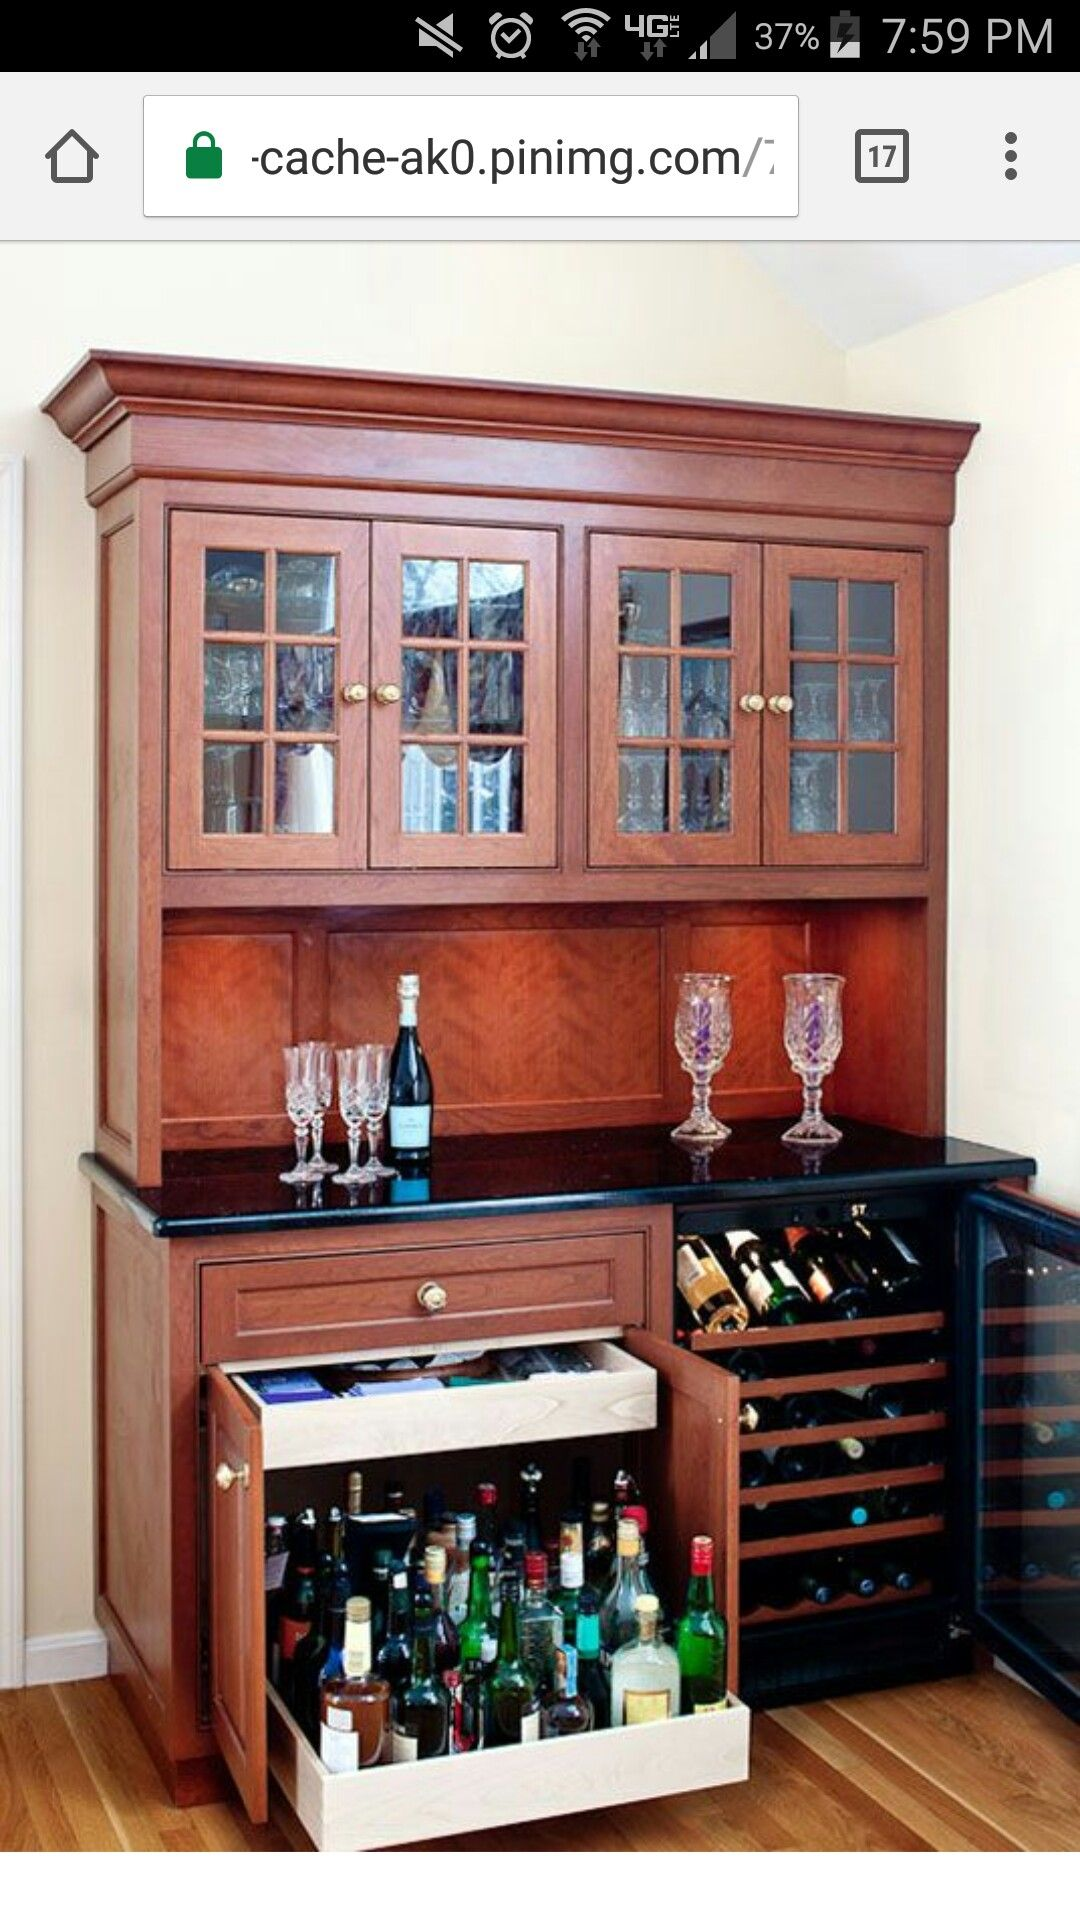 Pin by Jean Stegemiller on liquor cabinet | Pinterest | Liquor ...